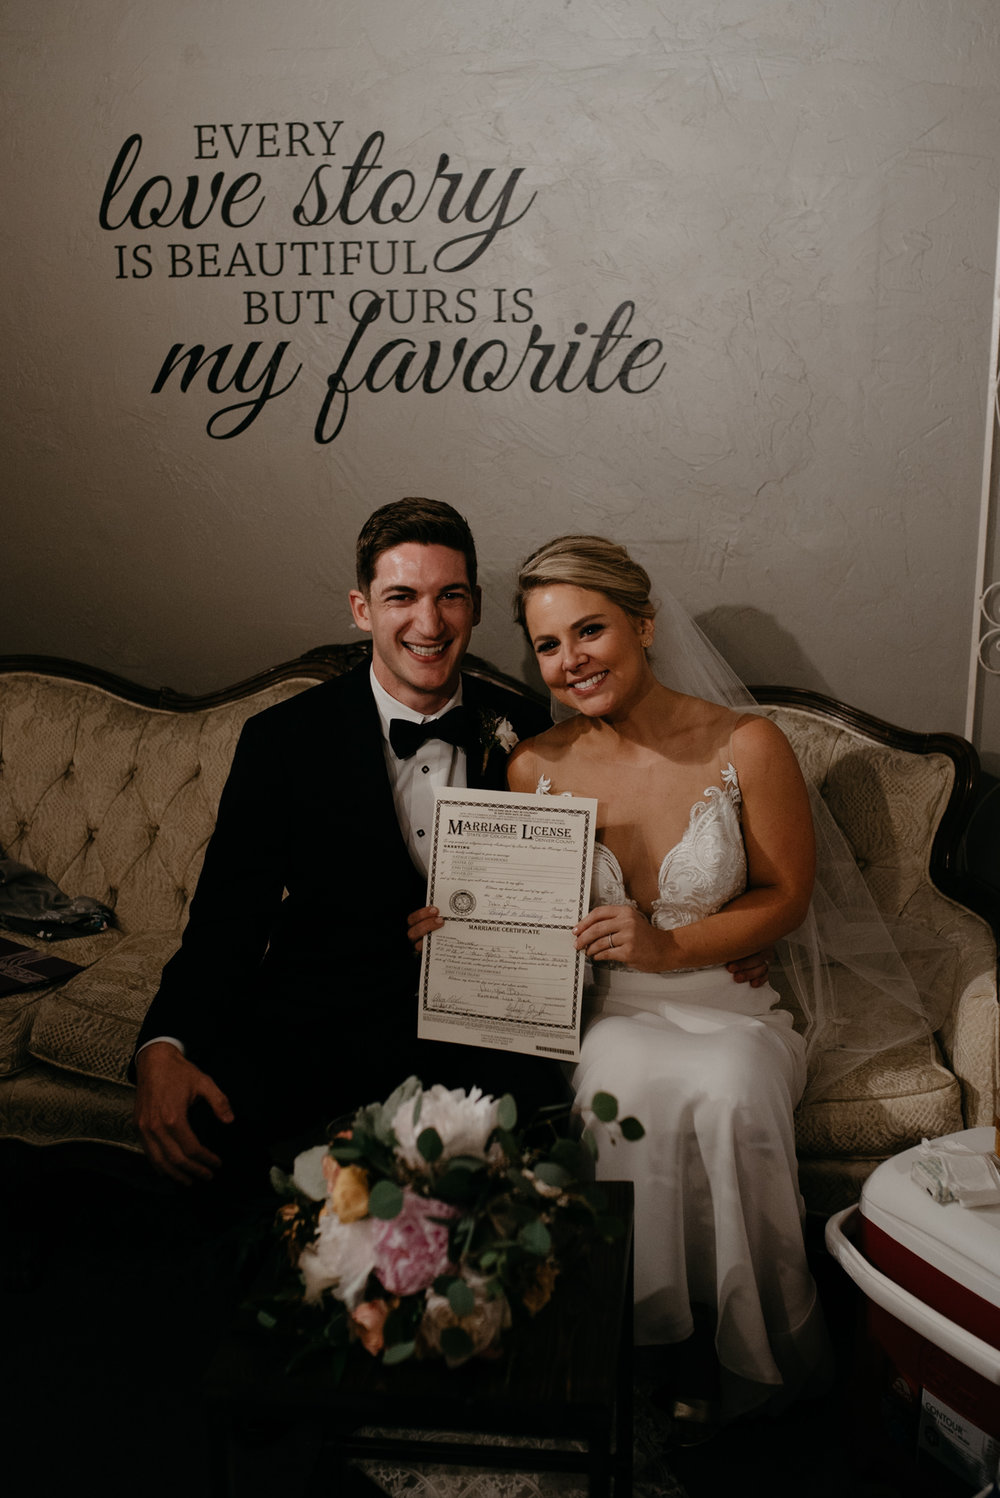 Bride and groom with marriage license. Moss Denver wedding photographer.